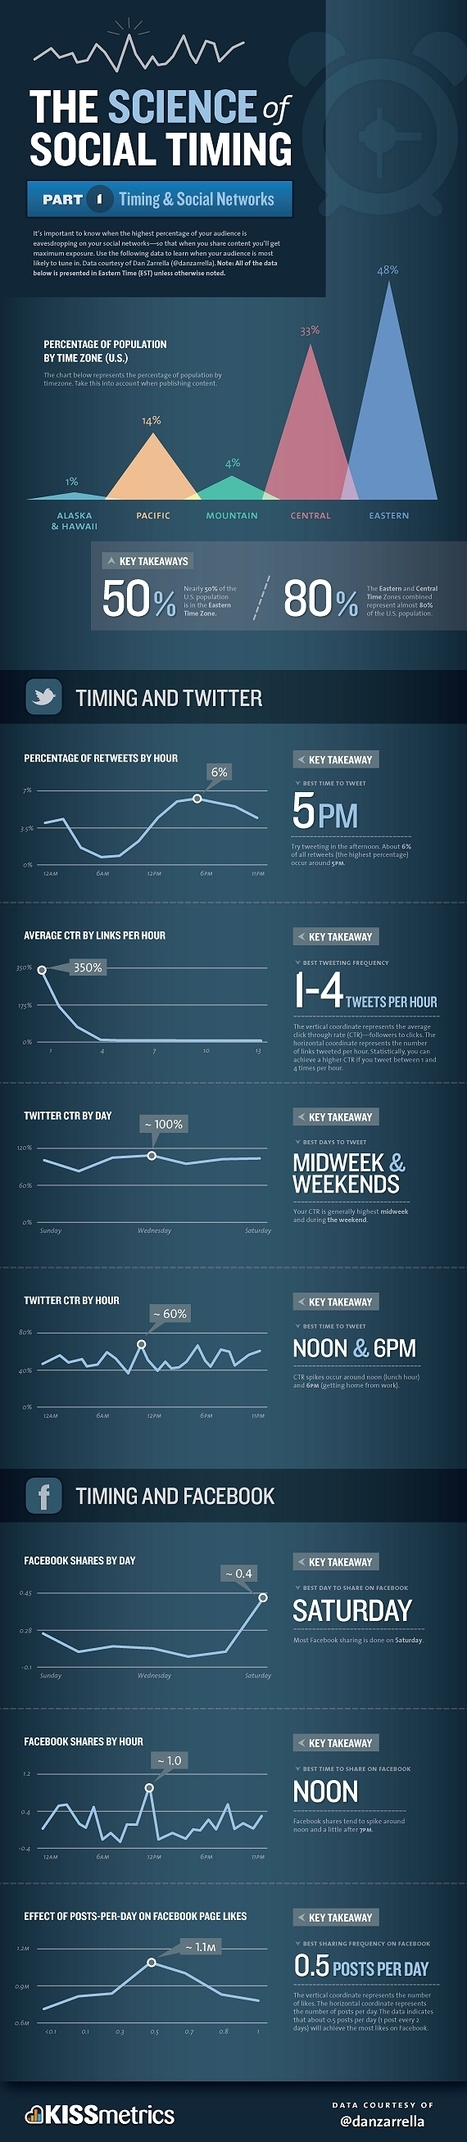 The Science of Social Timing Part 1: Facebook and Twitter Social Networks | Time to Learn | Scoop.it